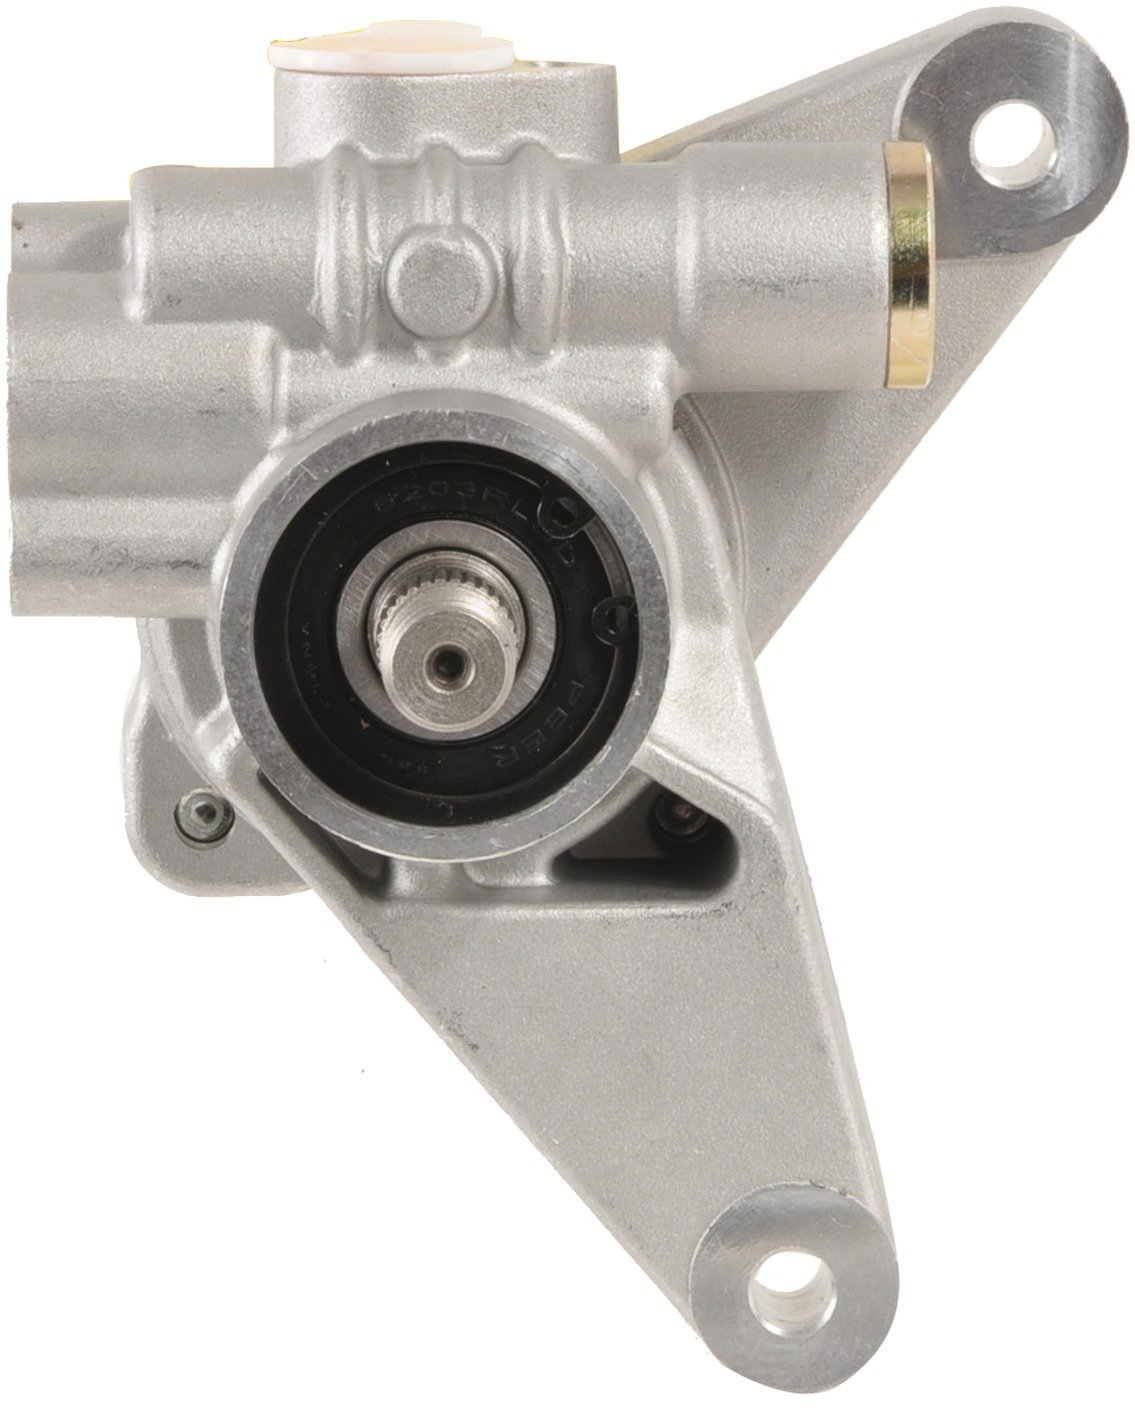 Cardone Select Cardone 96-5290 New Power Steering Pump without Reservoir